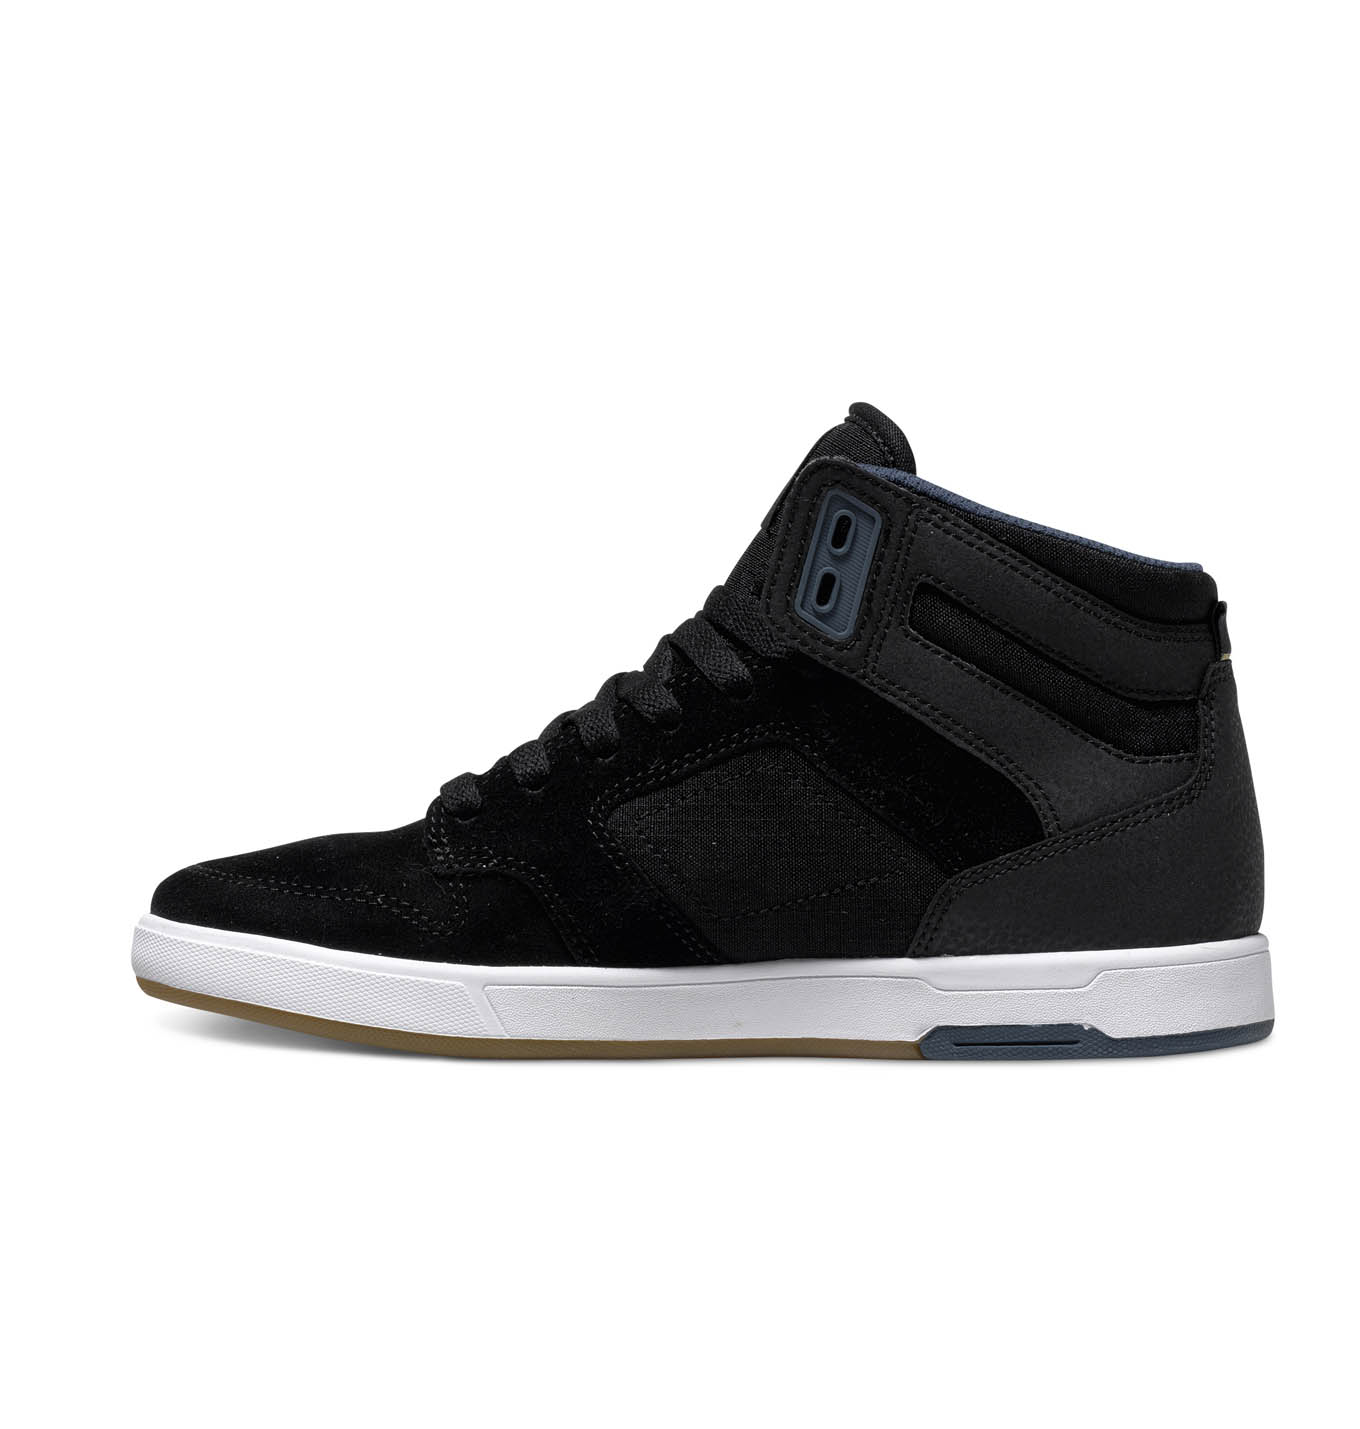 667efdf345b56d ... Nyjah High SE W Black  Nyjah High SE W Black  Nyjah High SE W Black. DC  Shoes